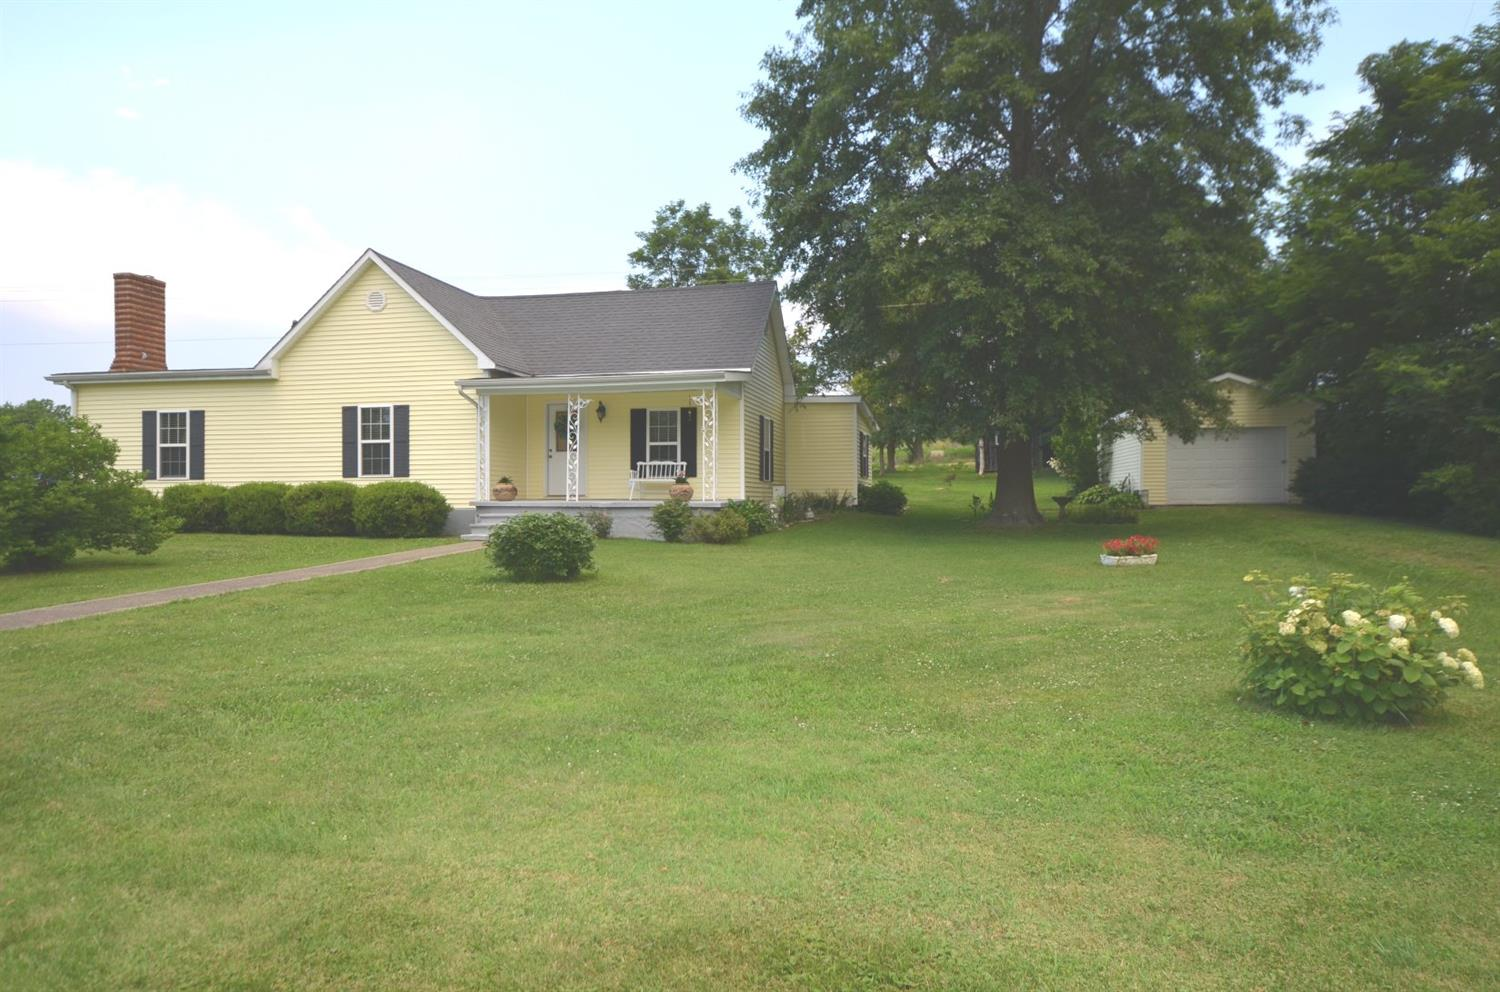 3165 Cornishville Road, Harrodsburg, KY 40330